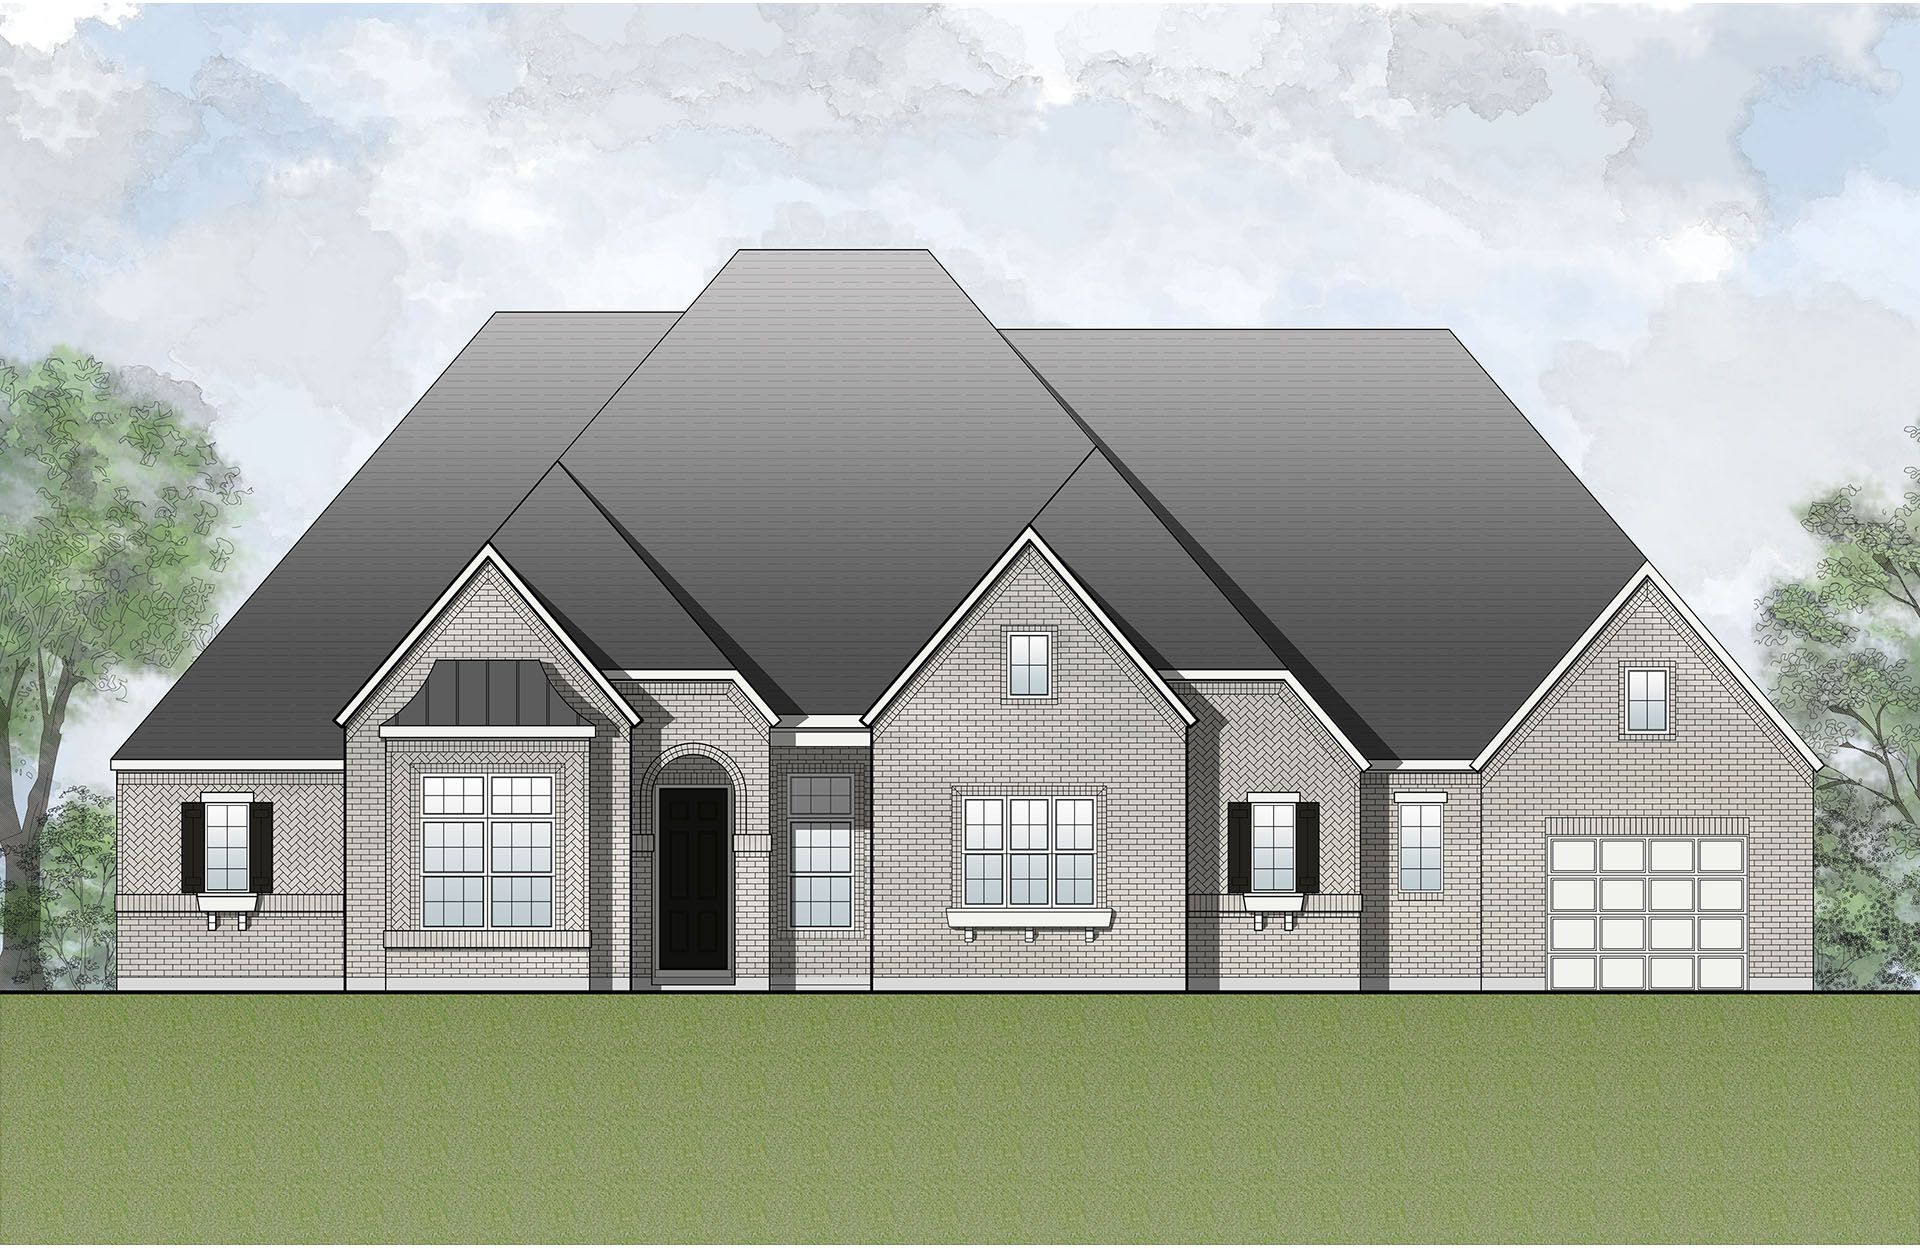 Single Family for Sale at Breezy Hill - Marley 795 Featherstone Rockwall, Texas 75087 United States